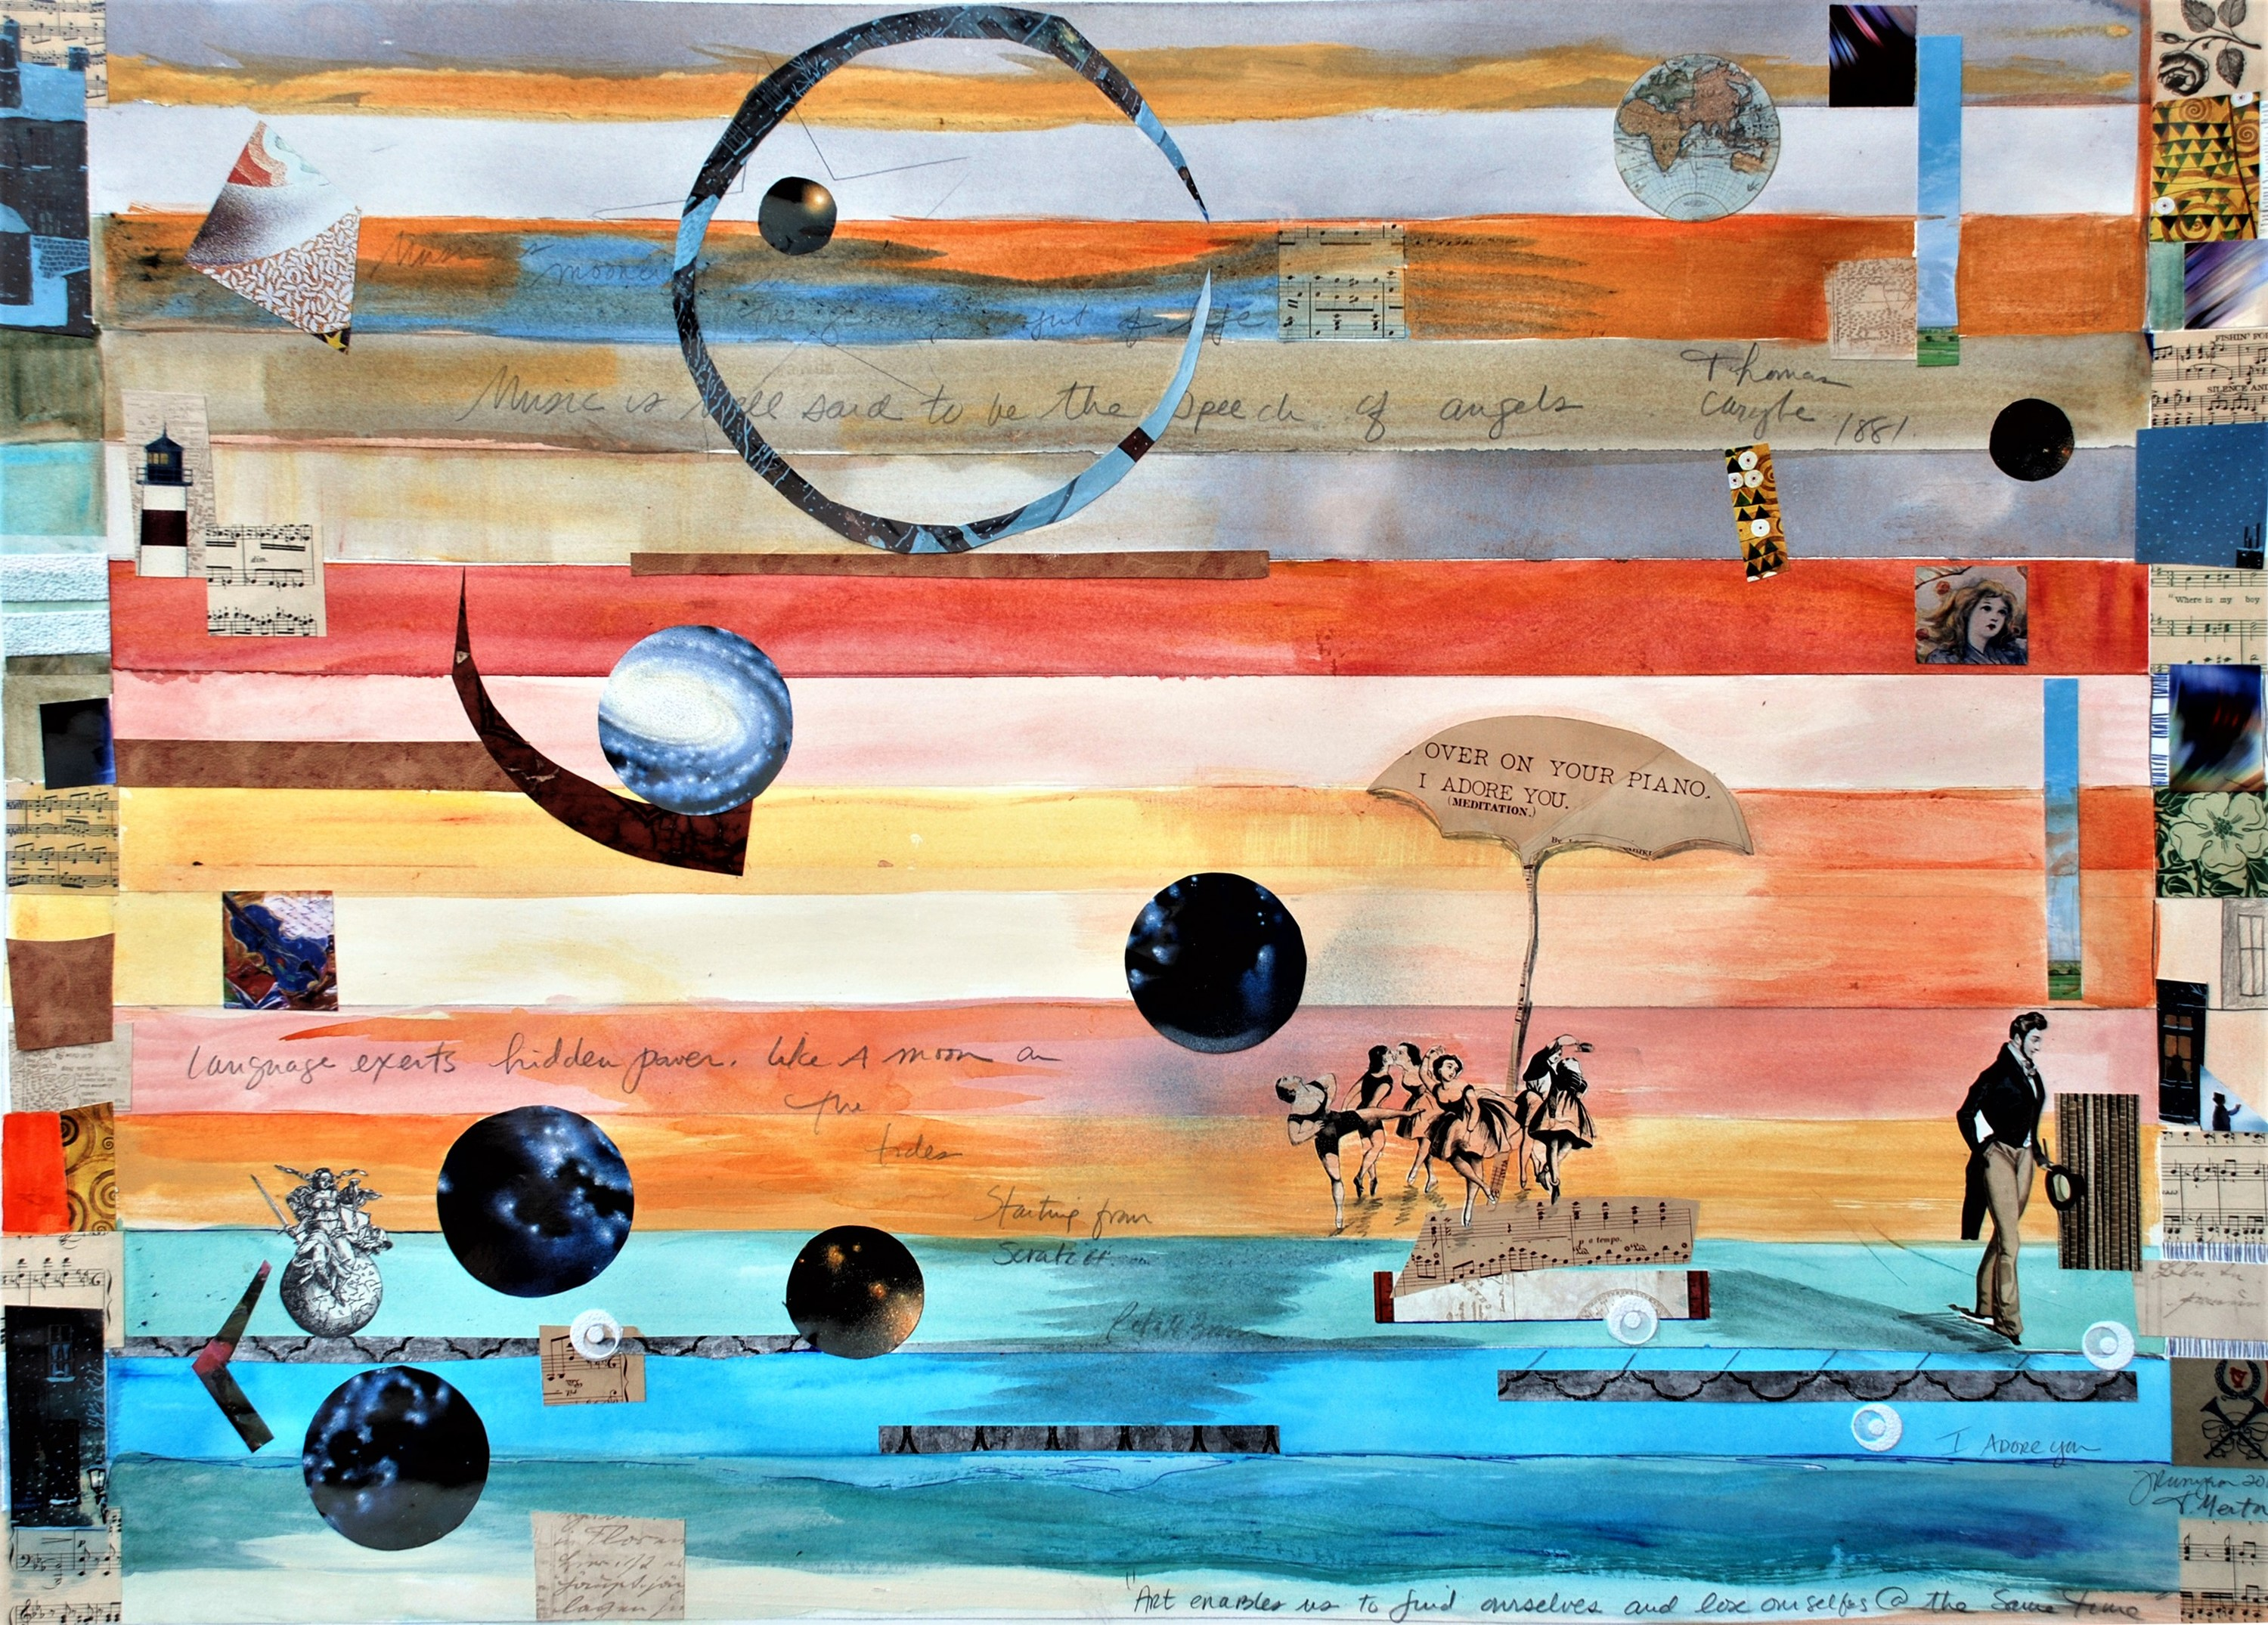 I adore you 2 mixed media collage on paper 40x29 ipwfh7